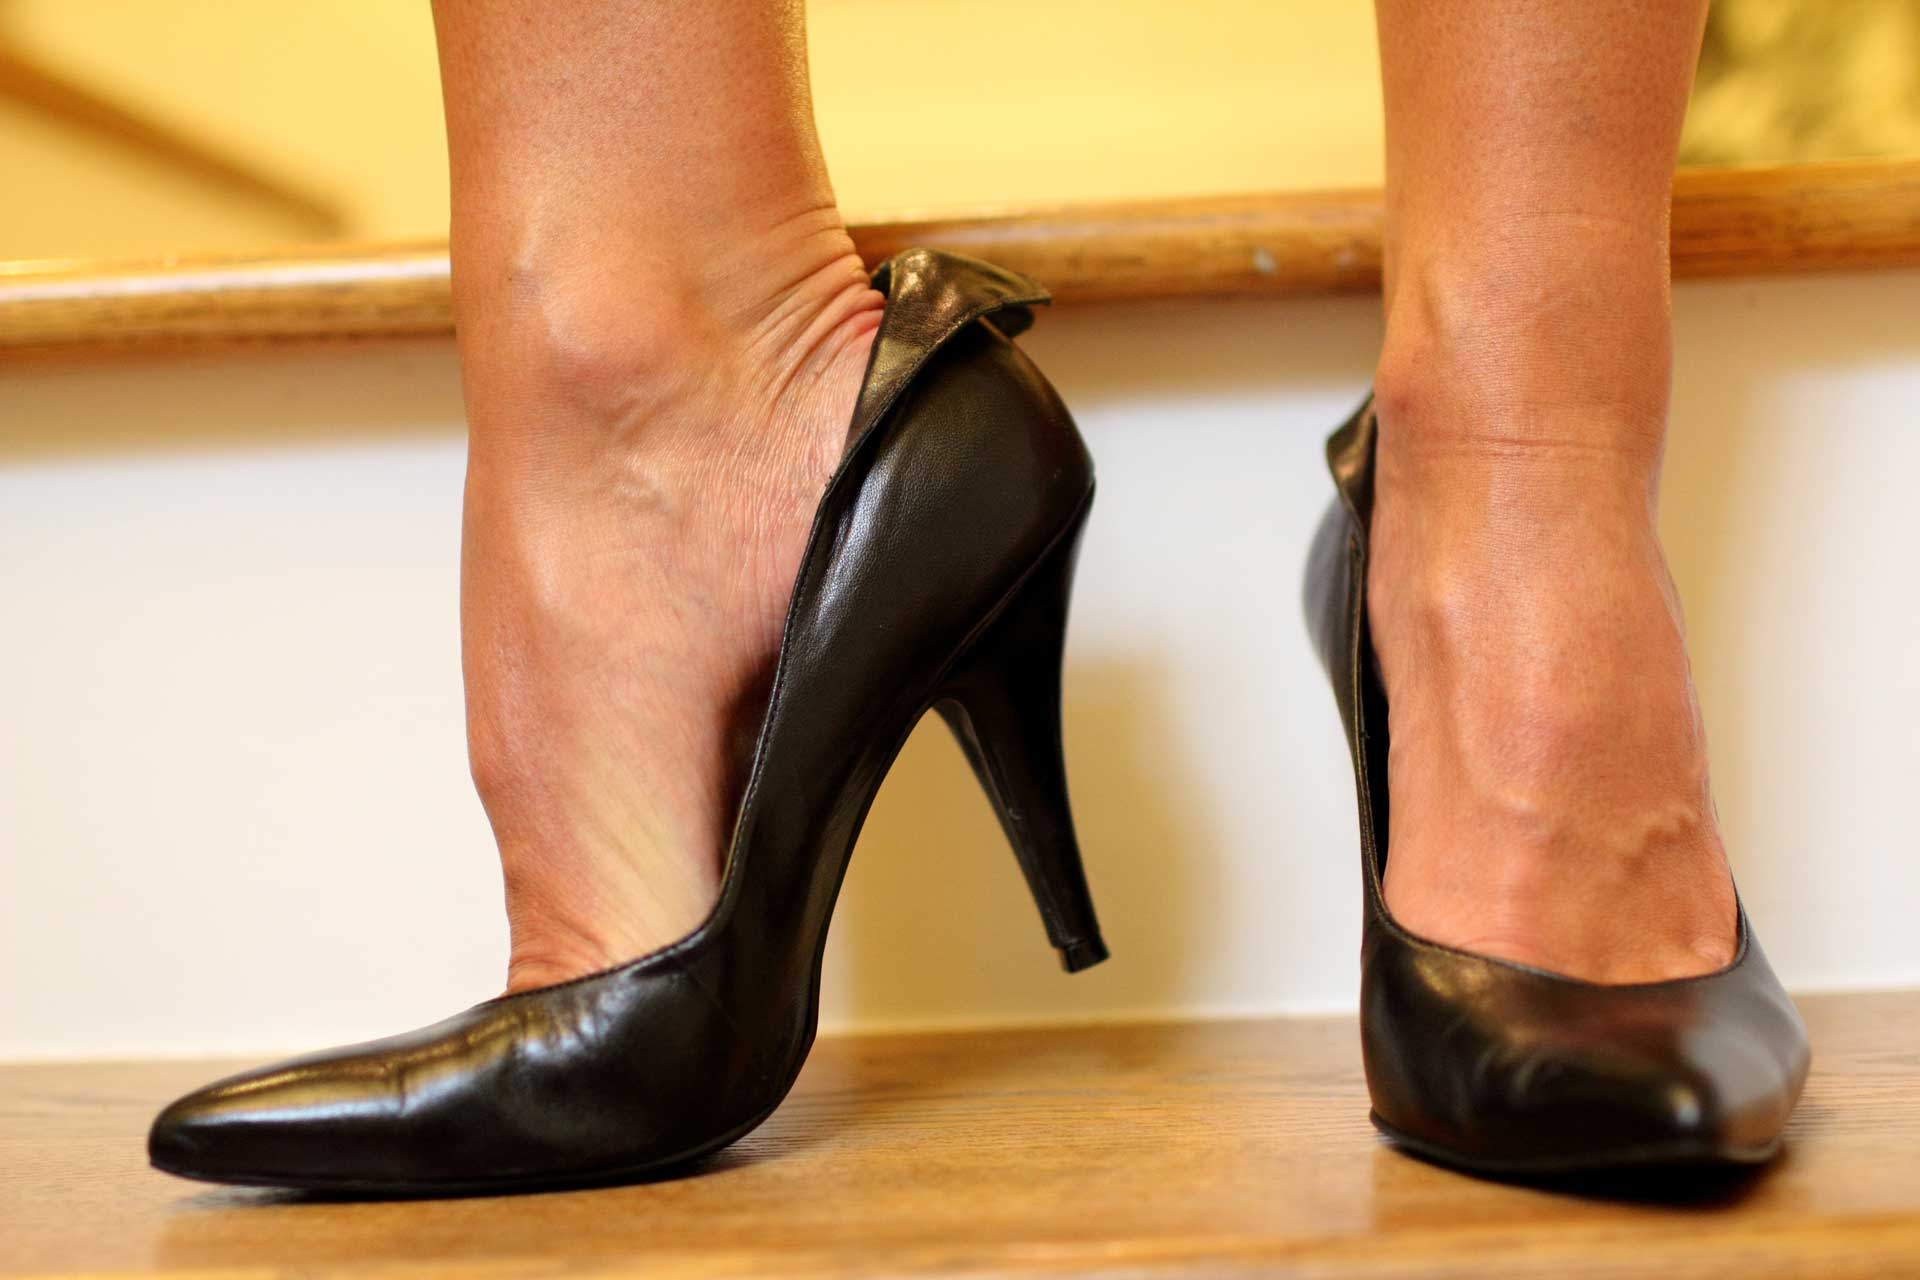 image of woman in high heels without orthotics